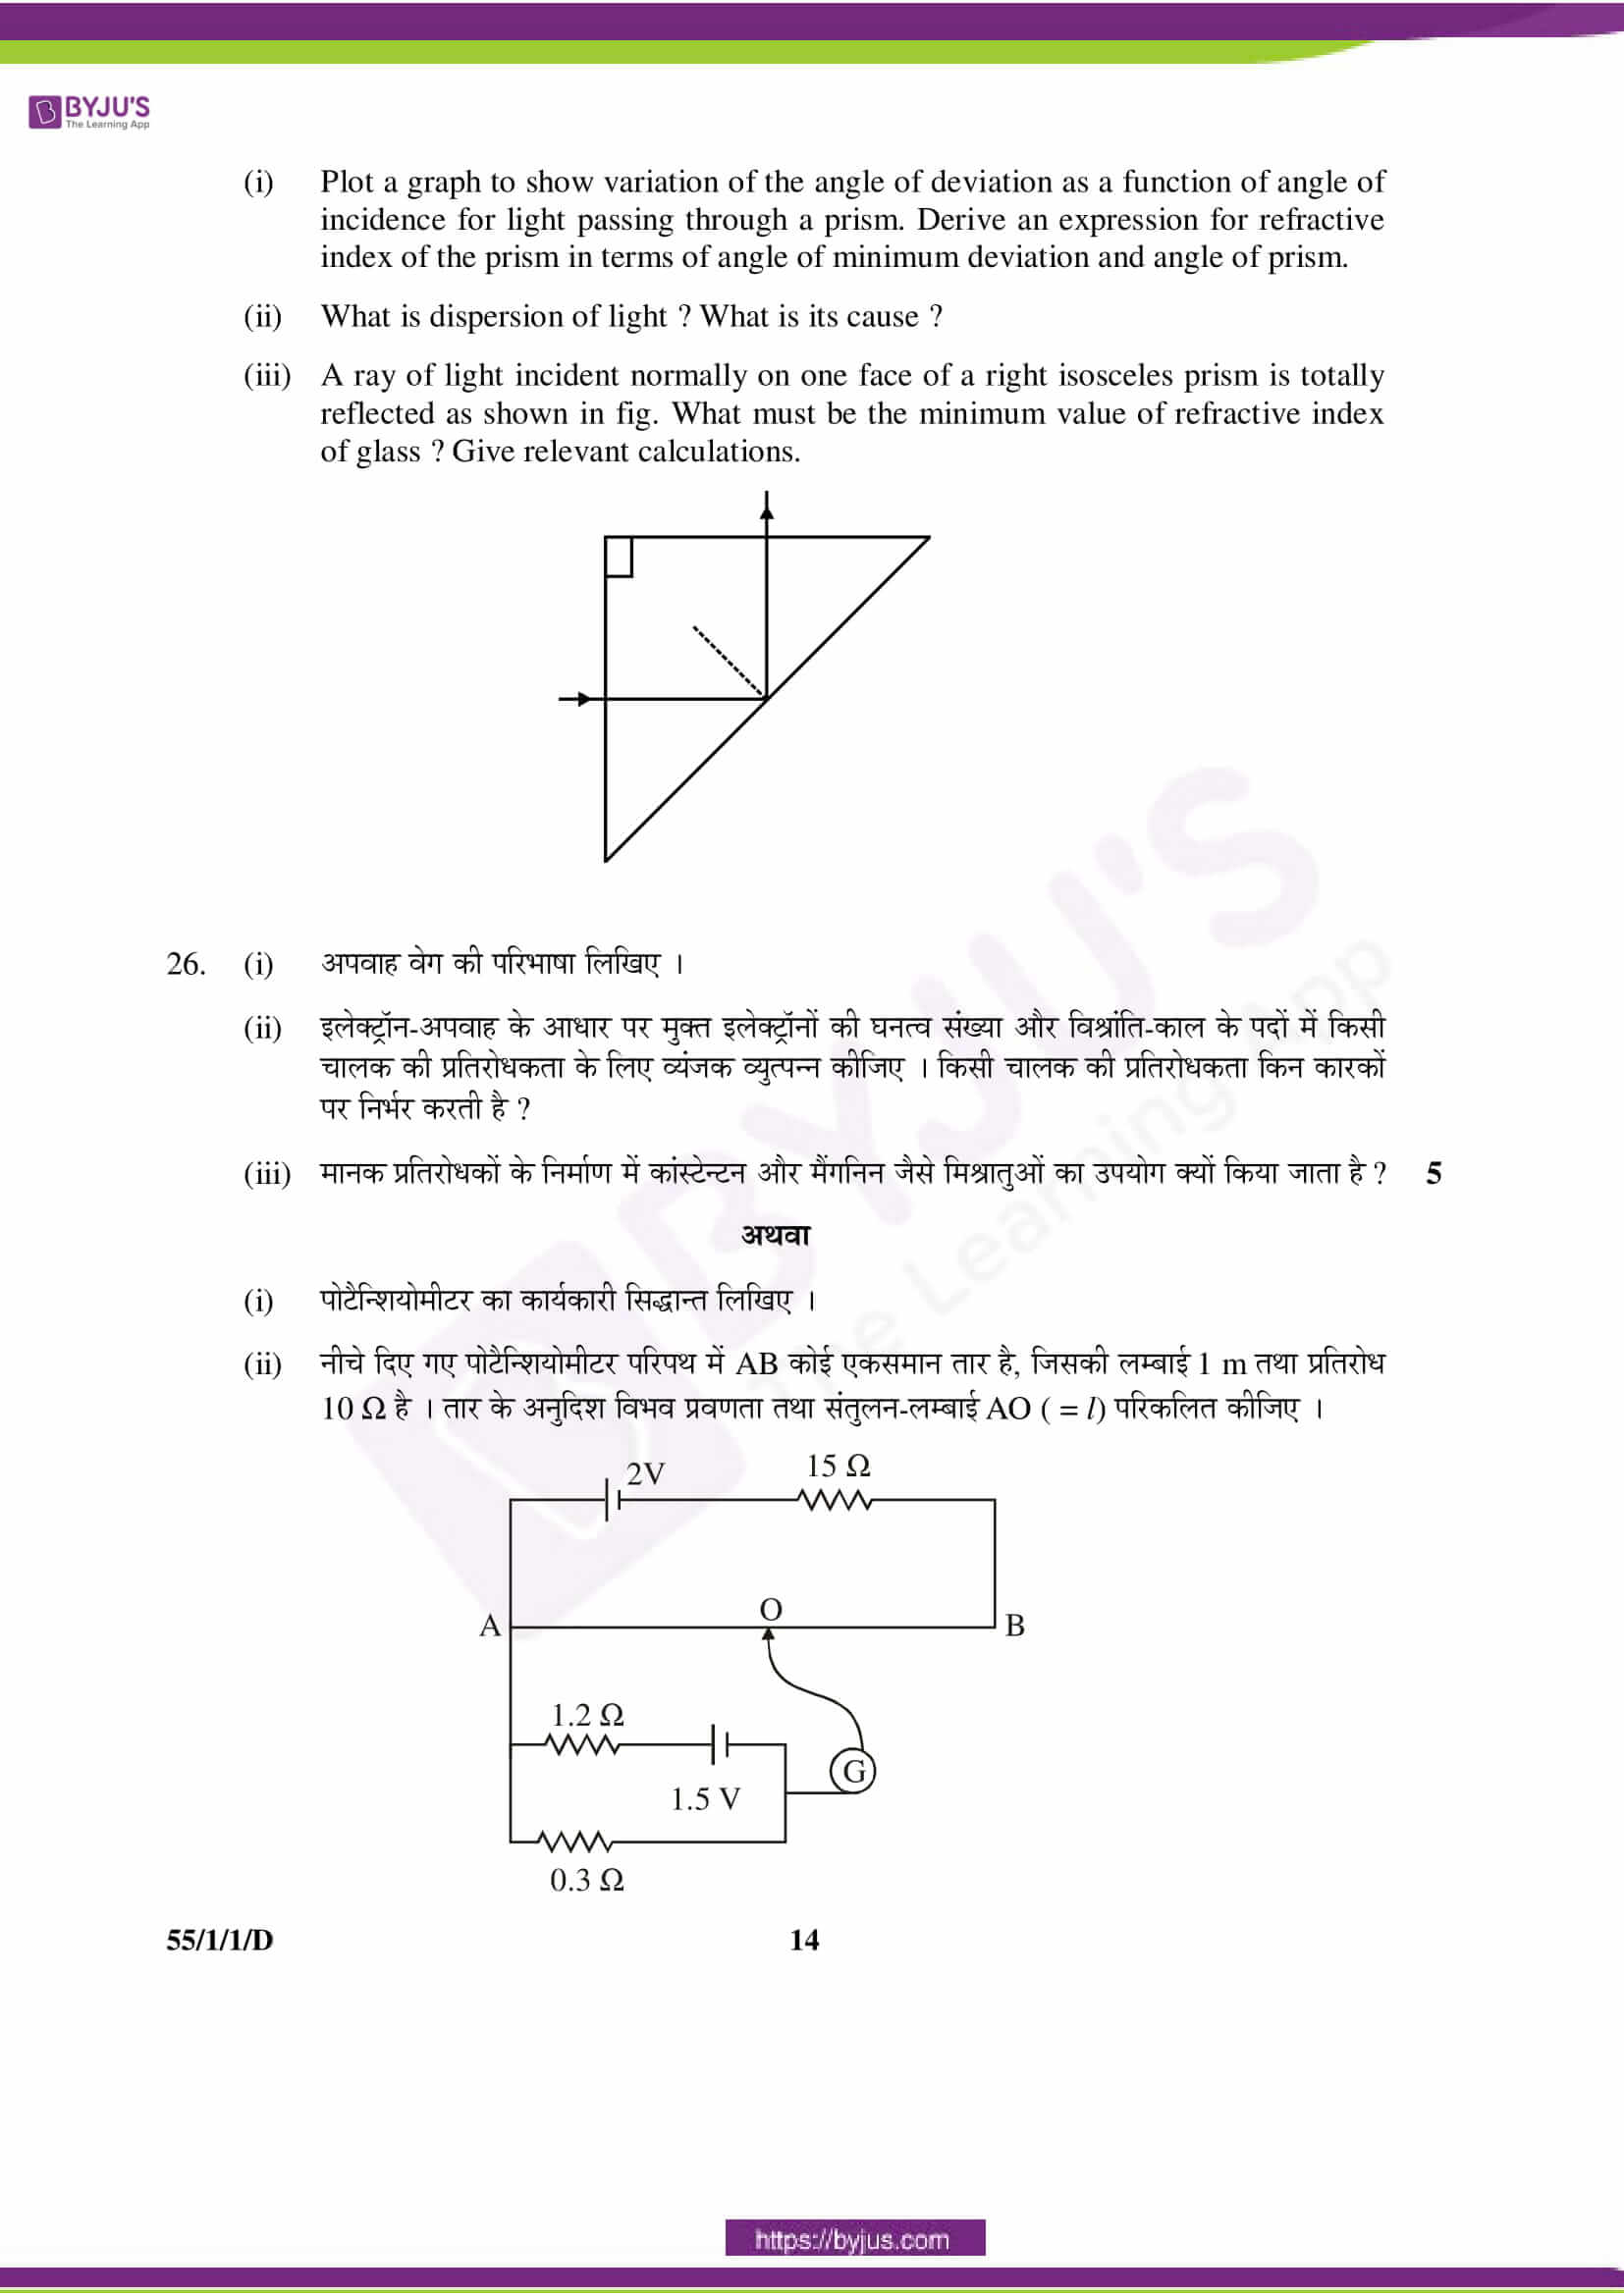 cbse class 12 phy 2016 question paper set 1